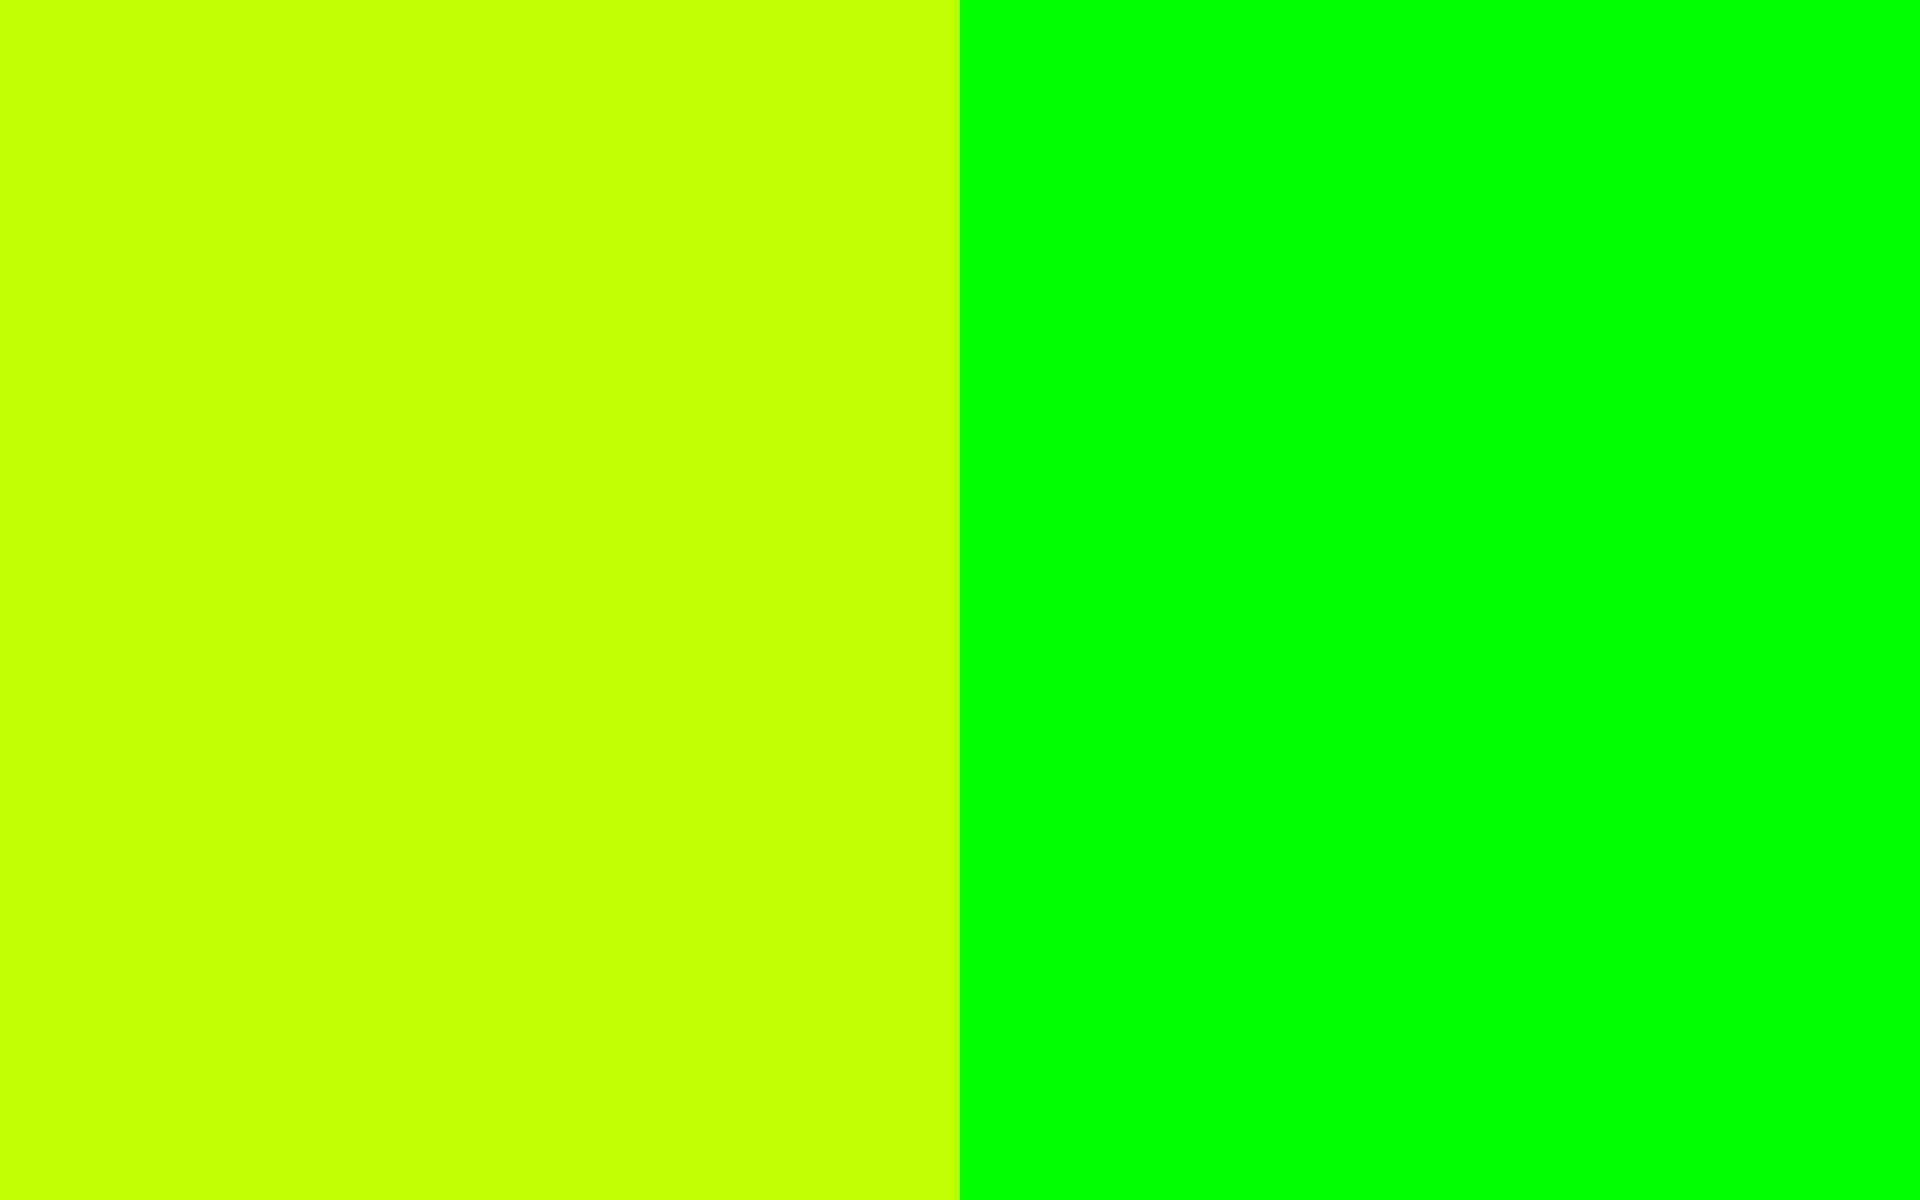 neon green background 55 images